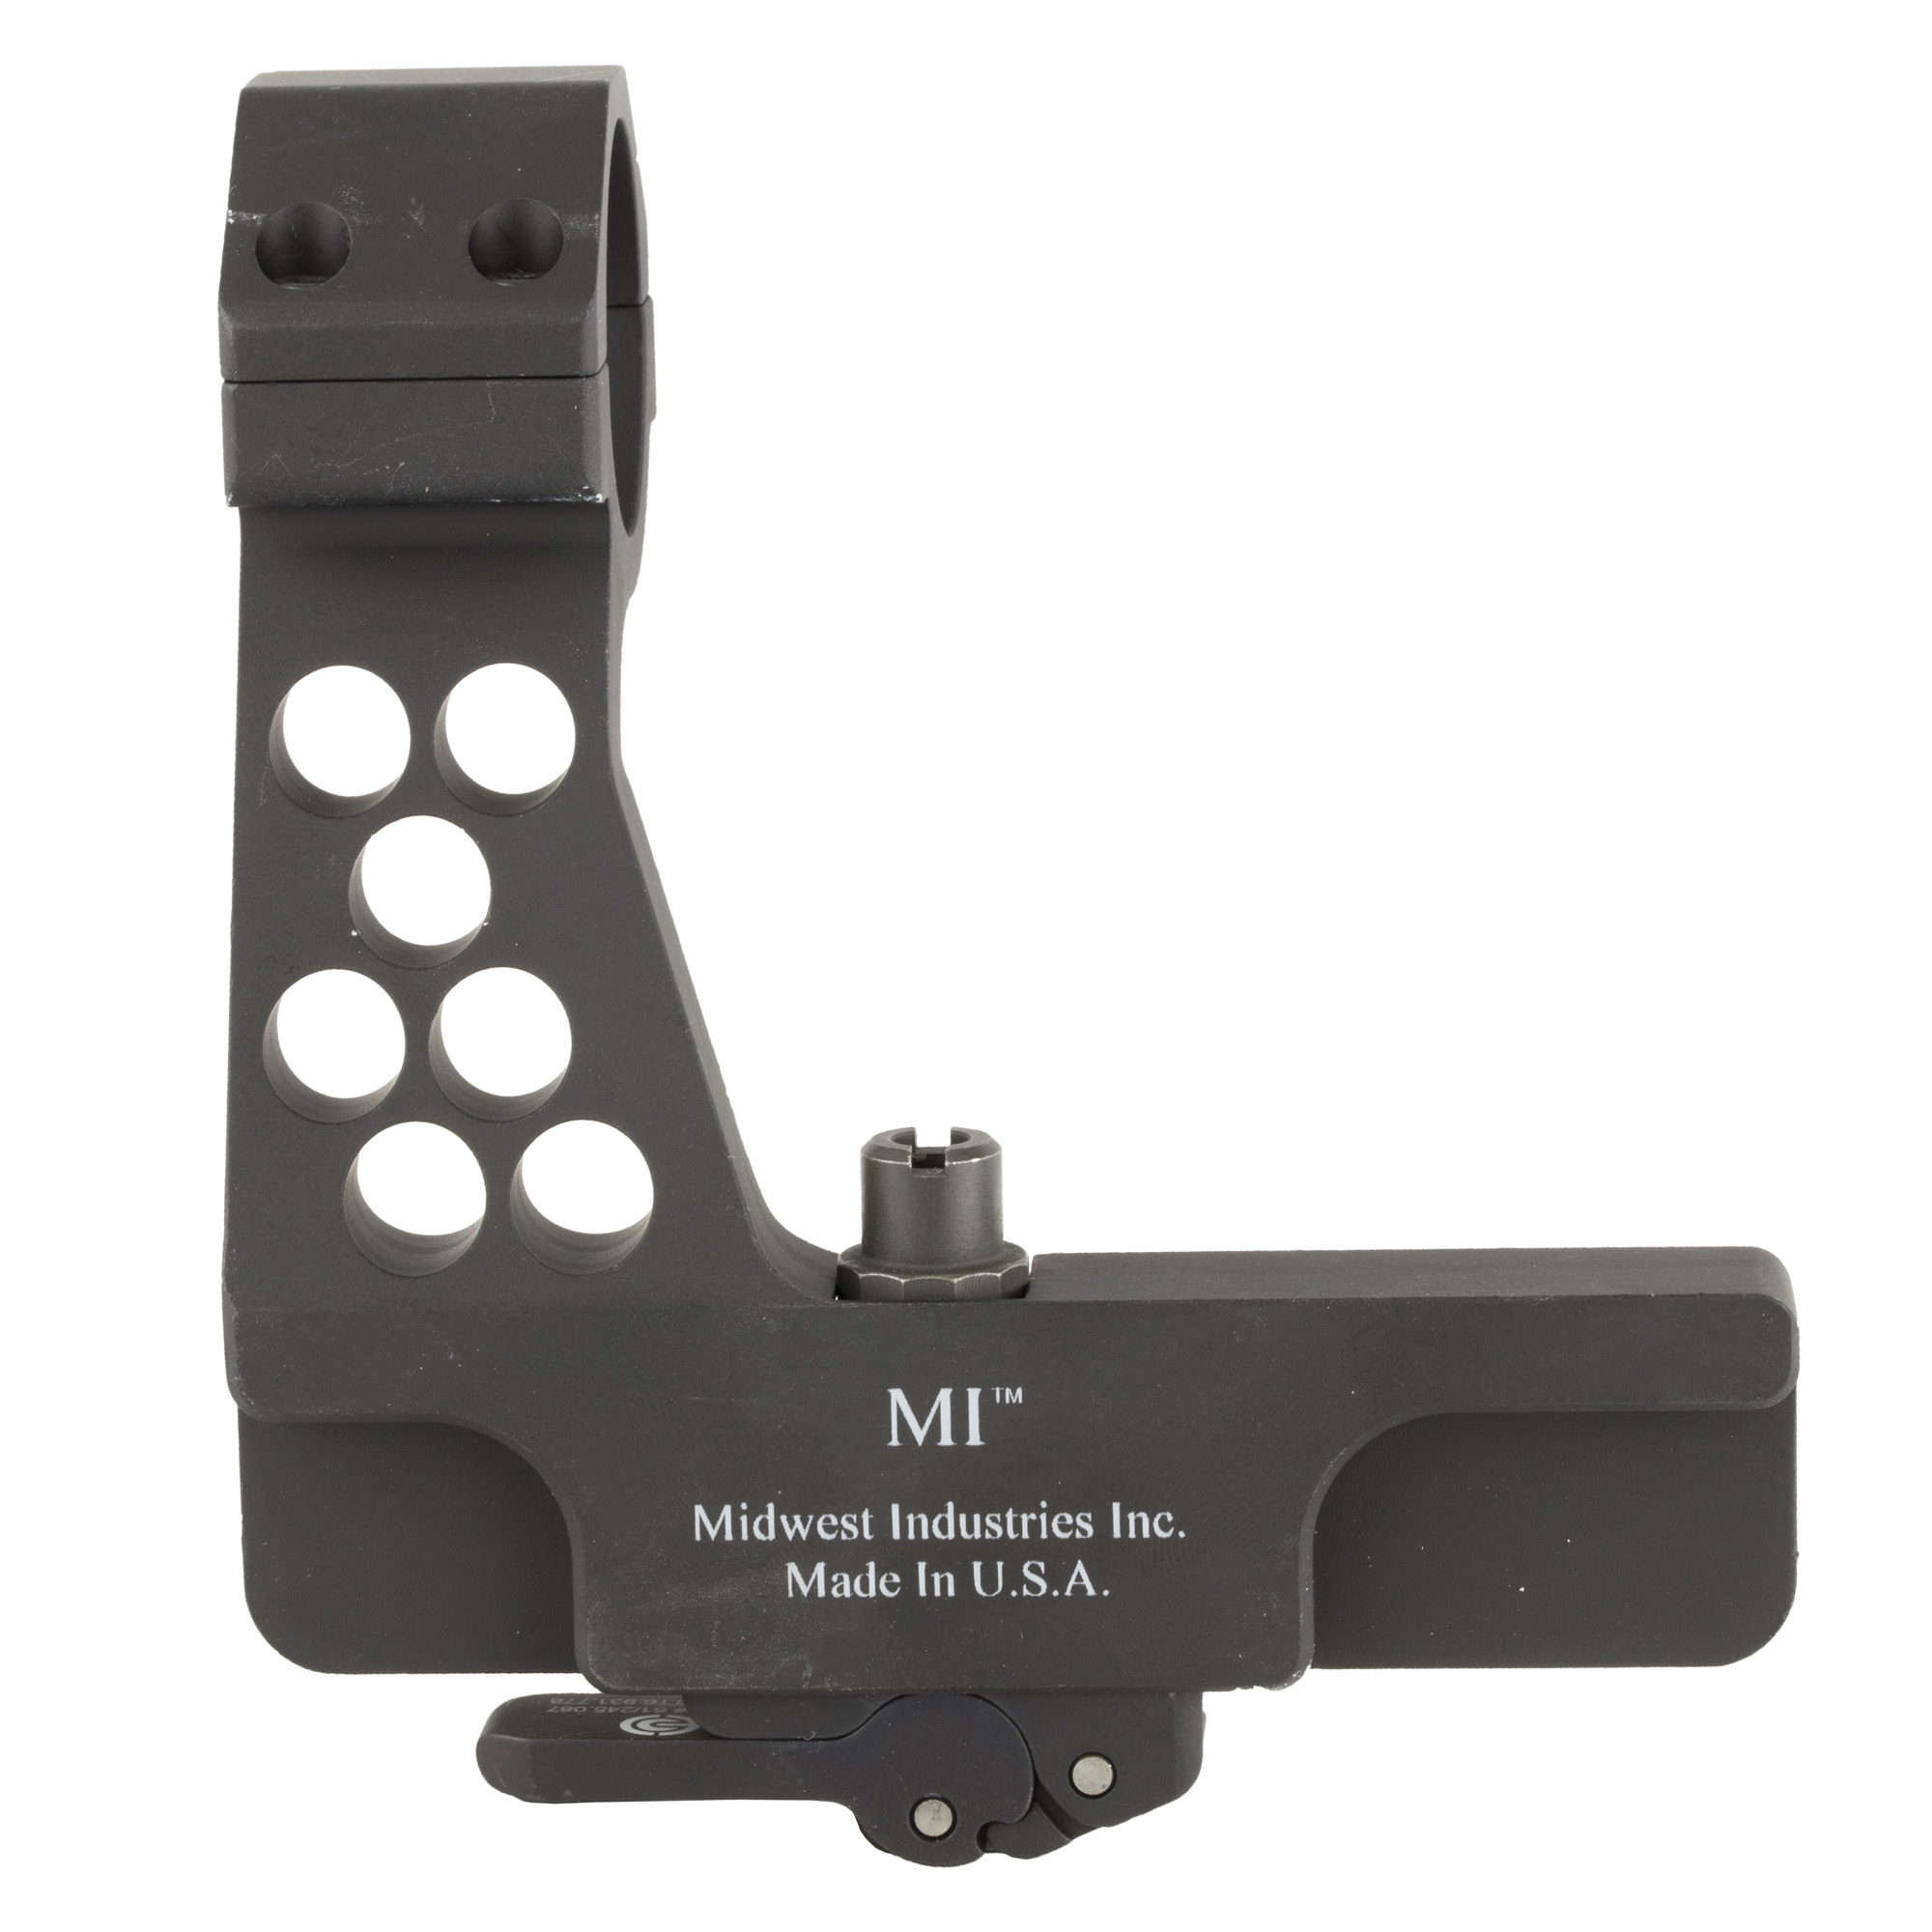 Side rail 30mm red dot mount for AK type rifles made by Midwest Industries.